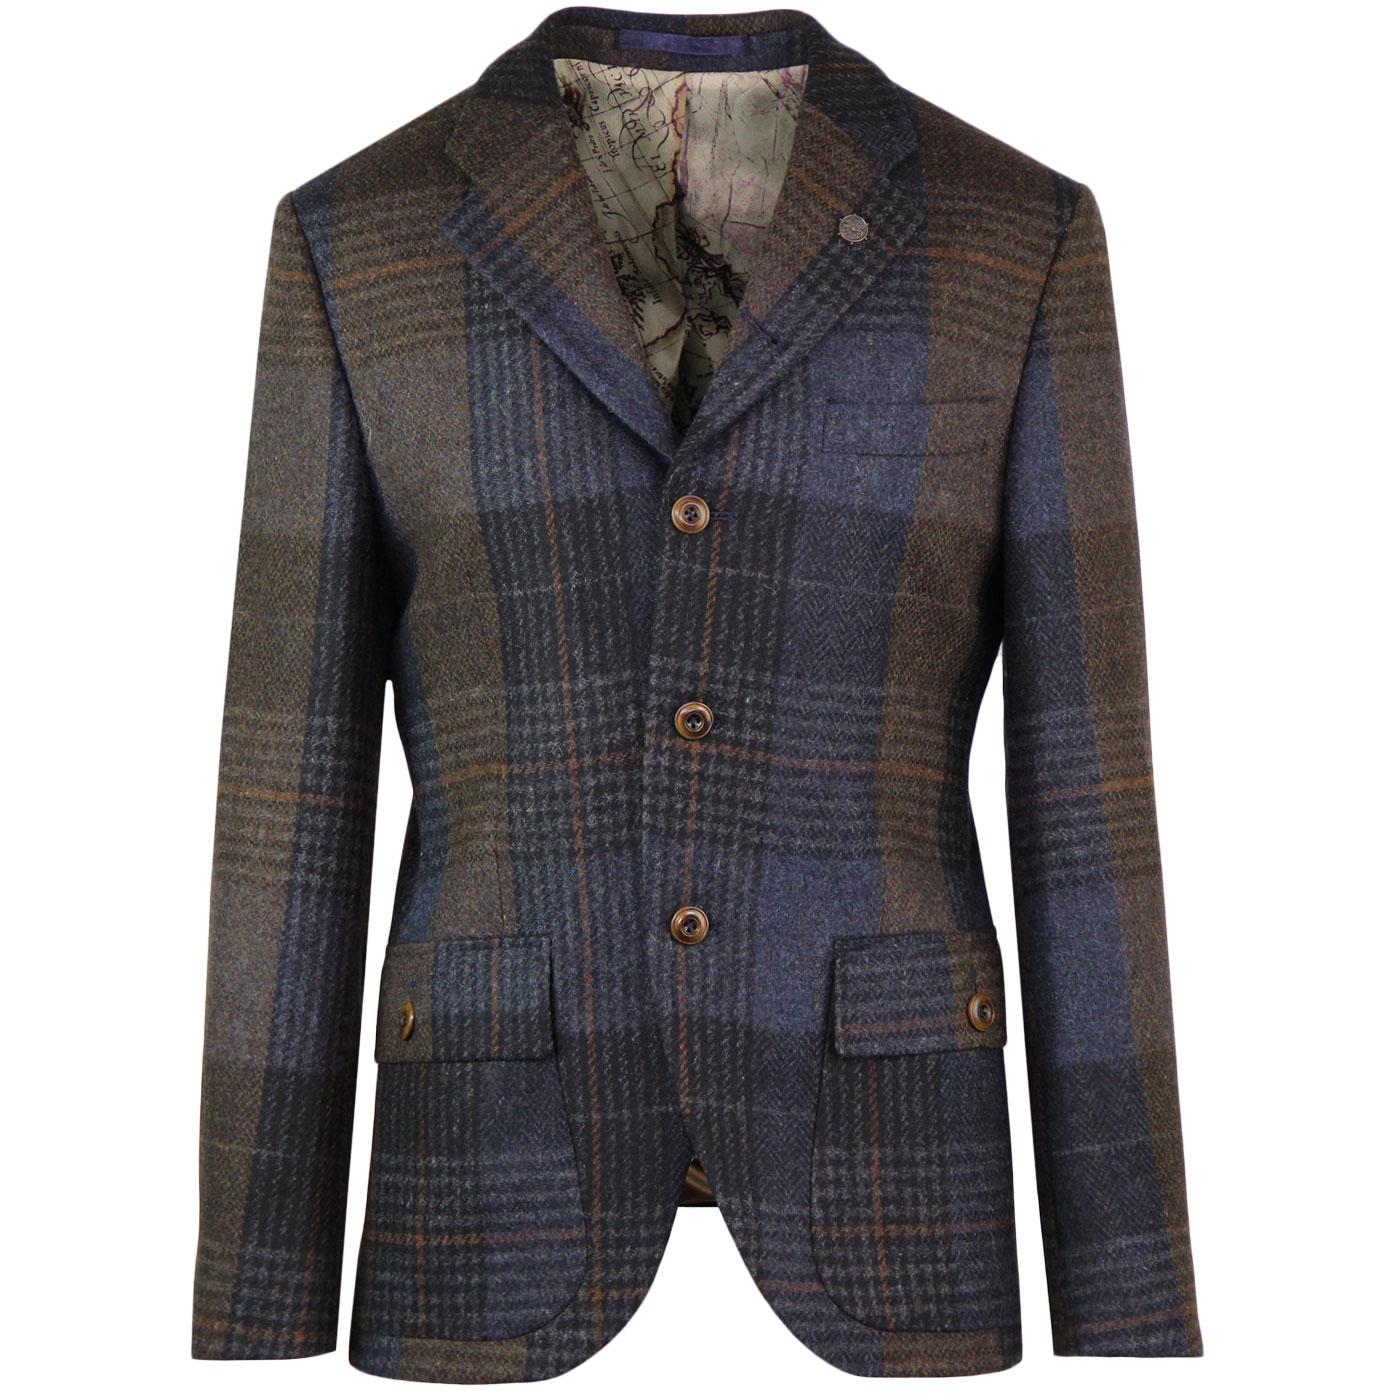 Grouse GIBSON LONDON Mod Check Blazer (Navy/Brown)